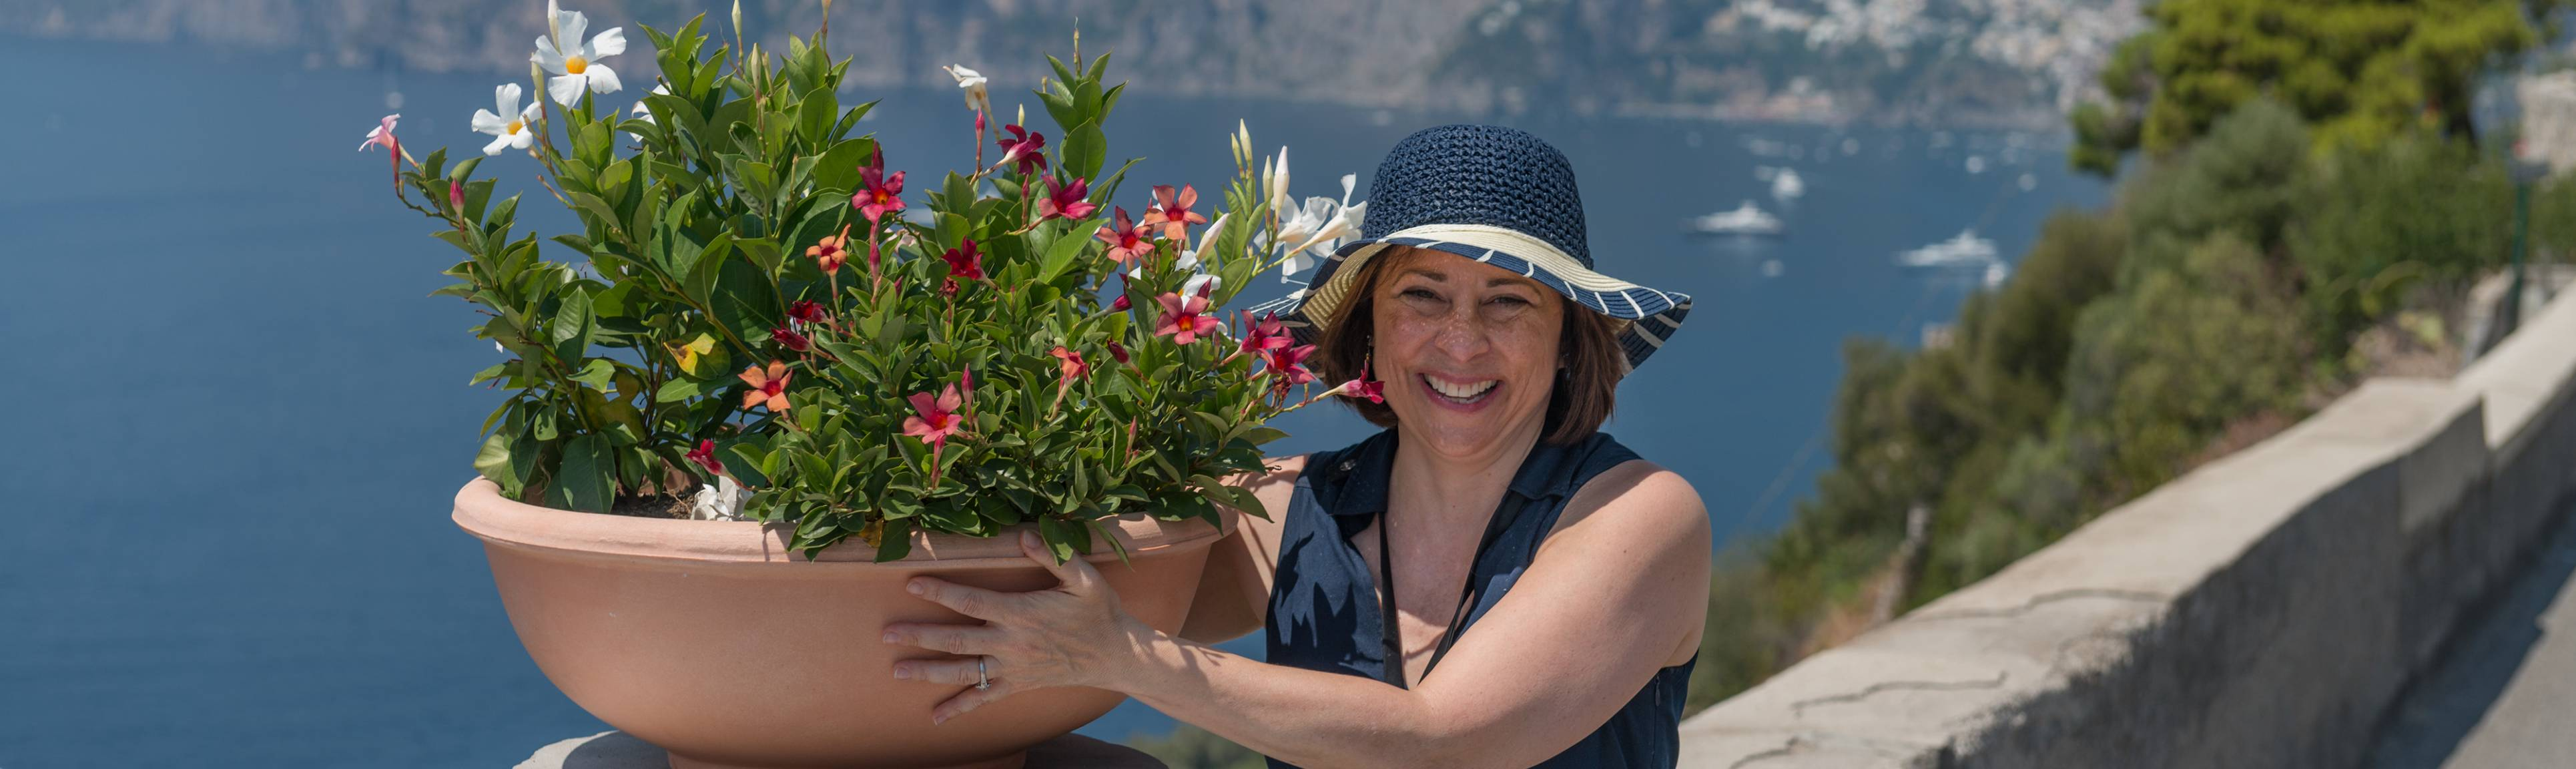 Carmen with urn filled beautiful flowers overlooking the Amalfi Coast